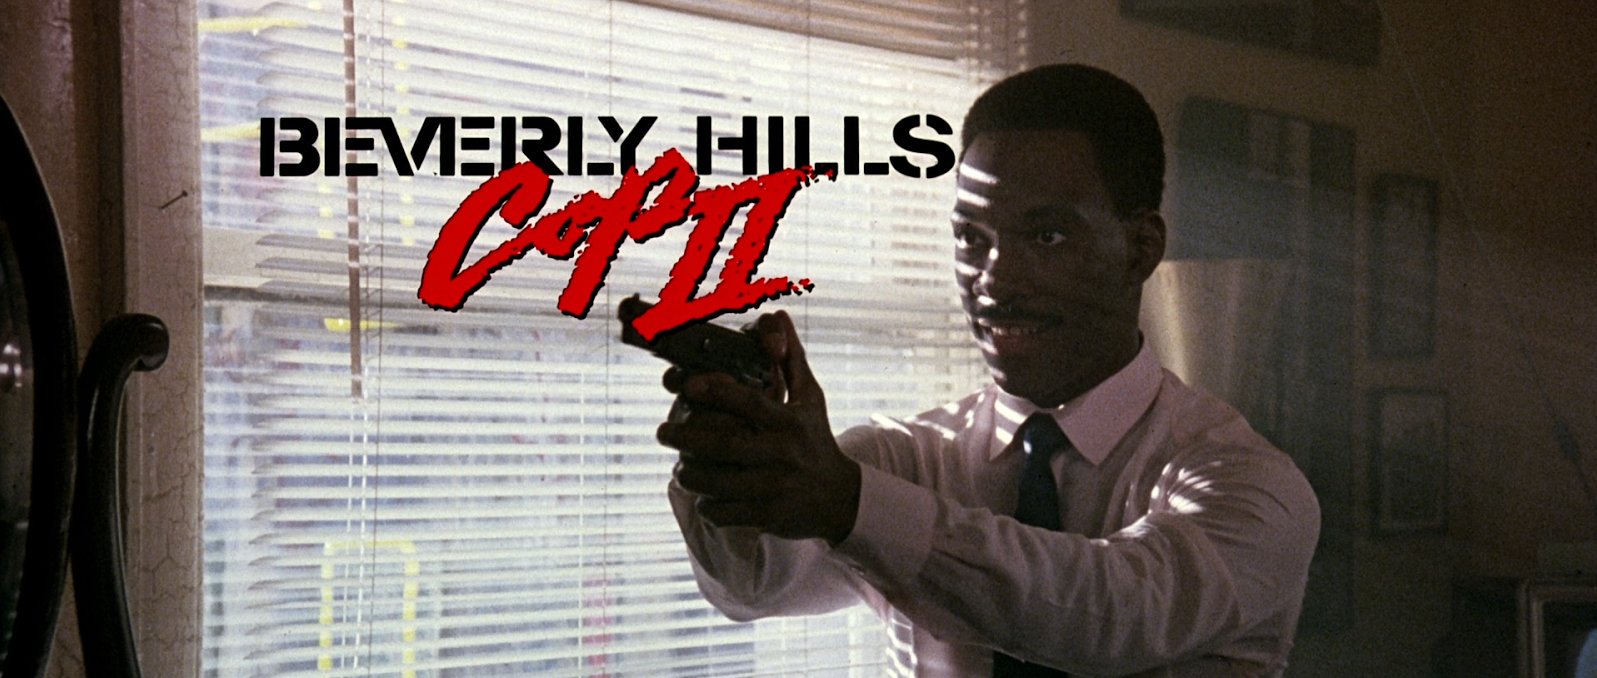 Beverly Hills Cop 2 Title Card